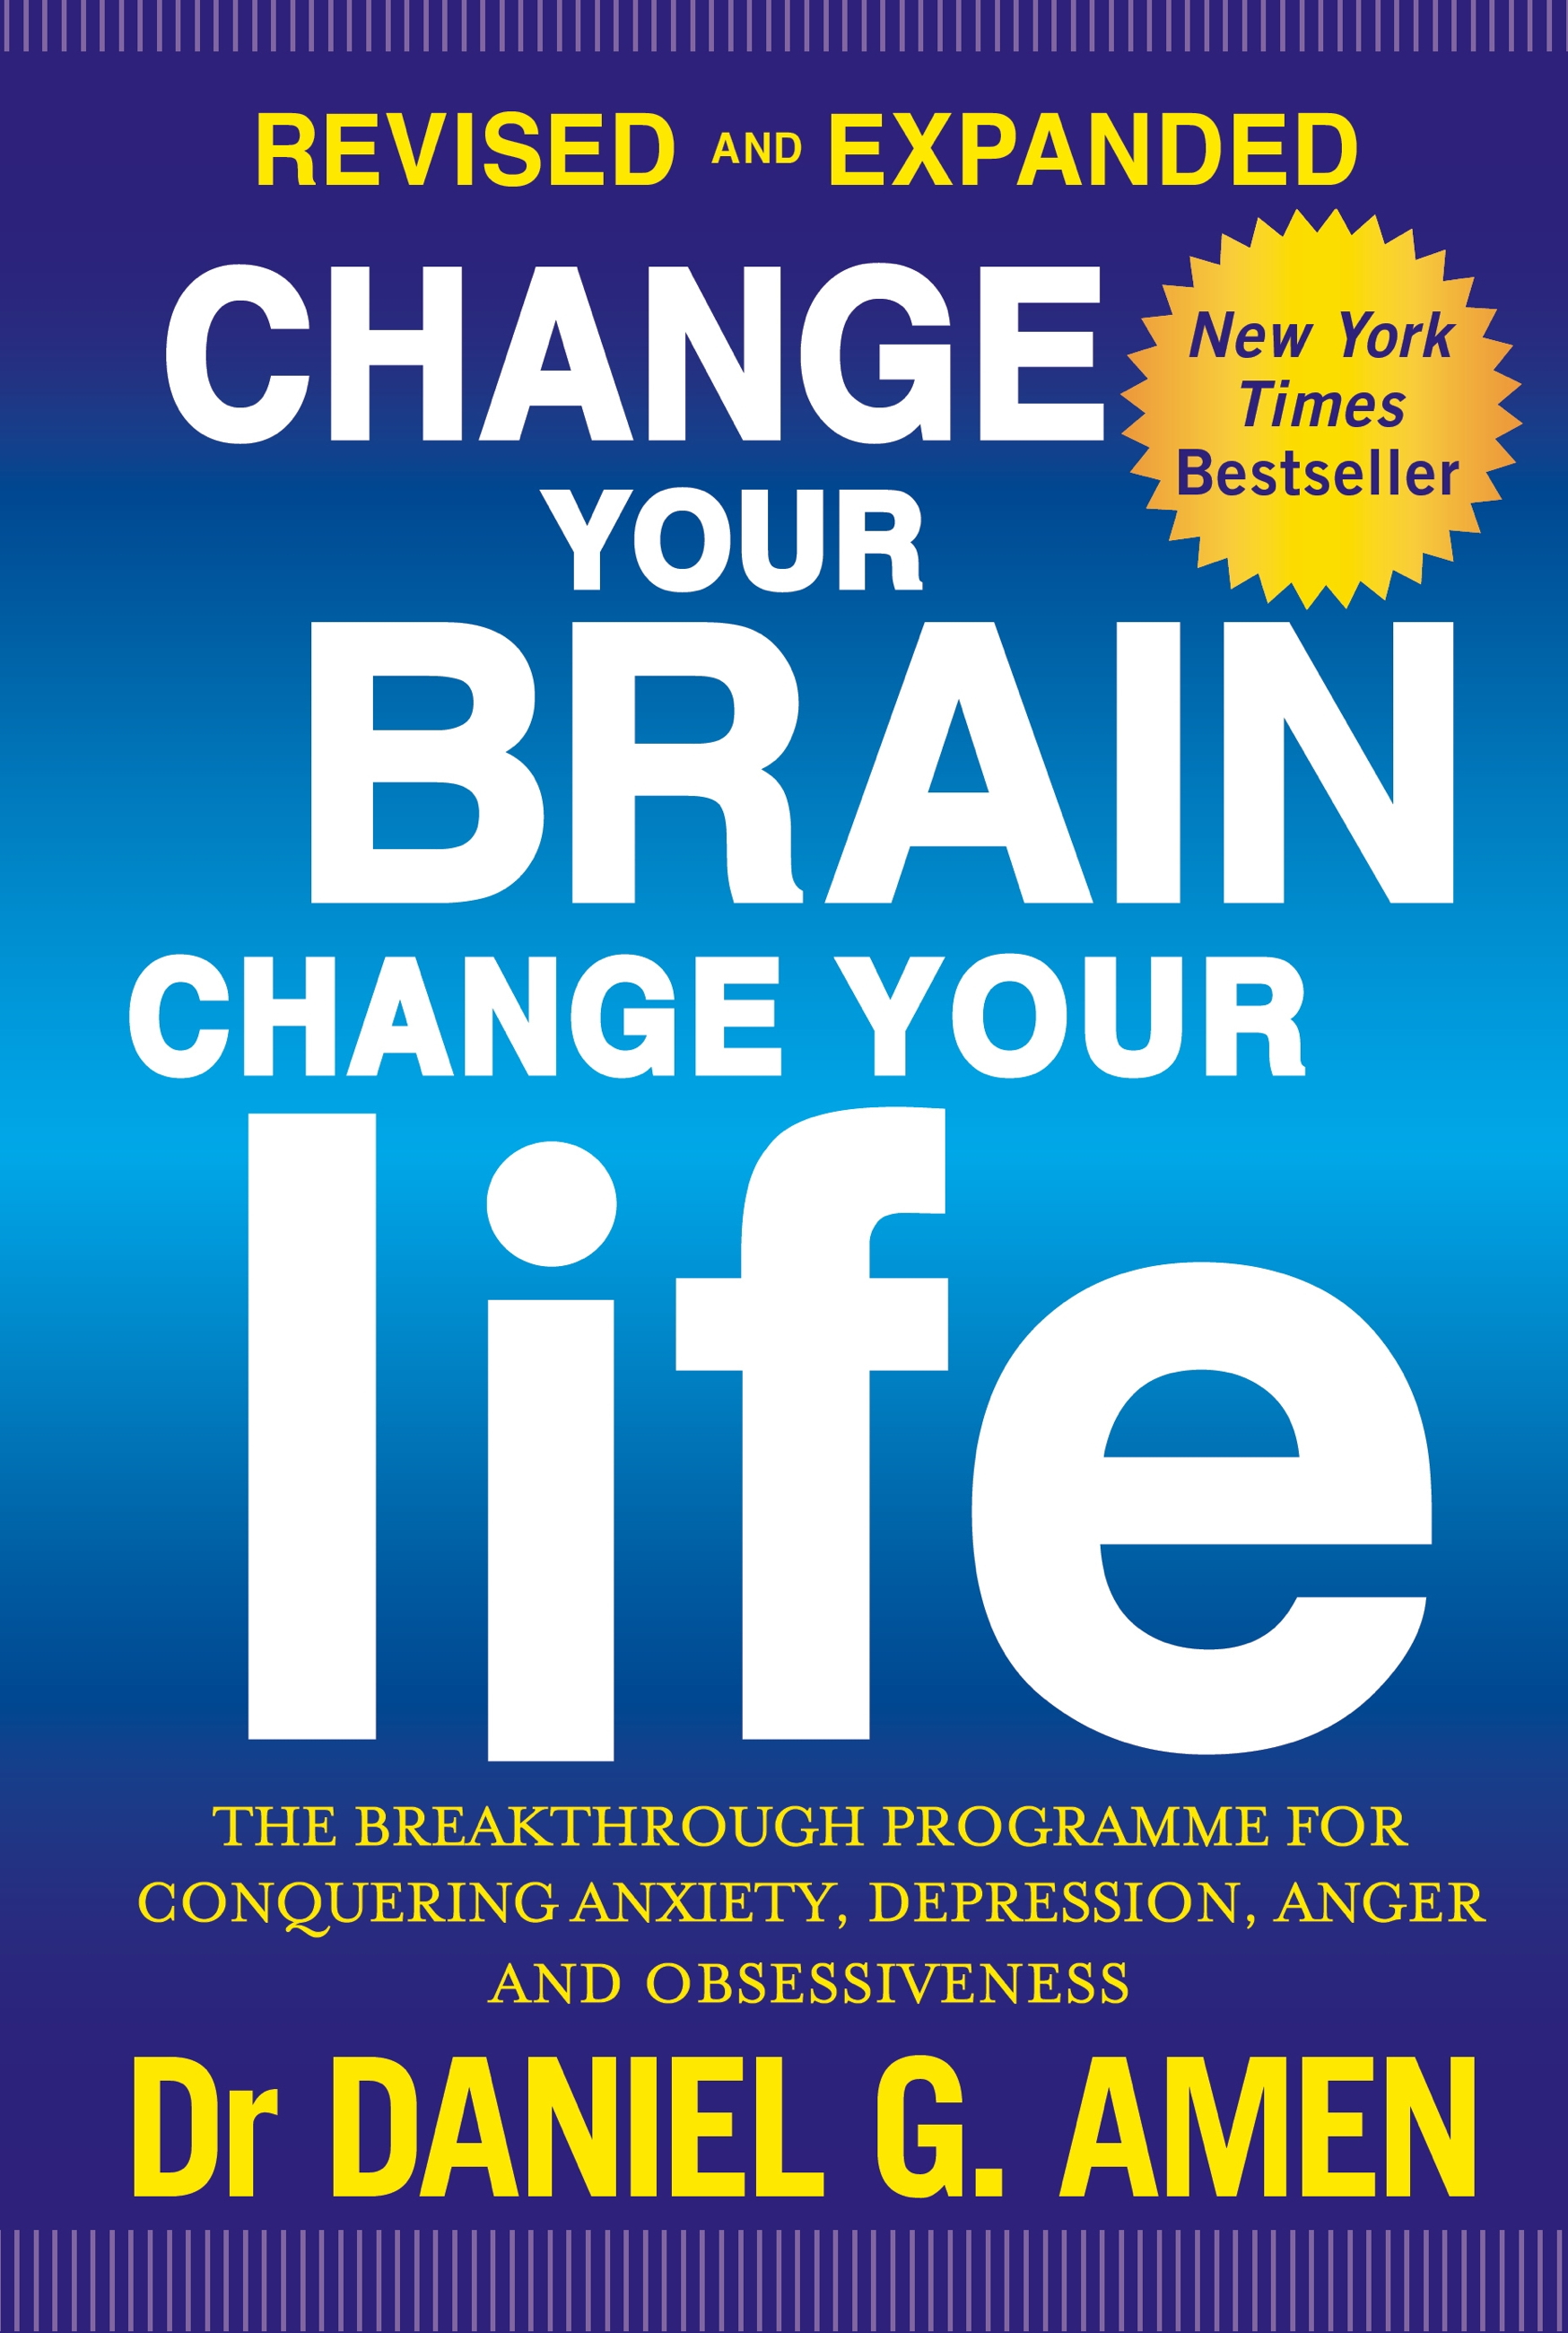 Change Your Brain, Change Your Life: Revised and Expanded Edition